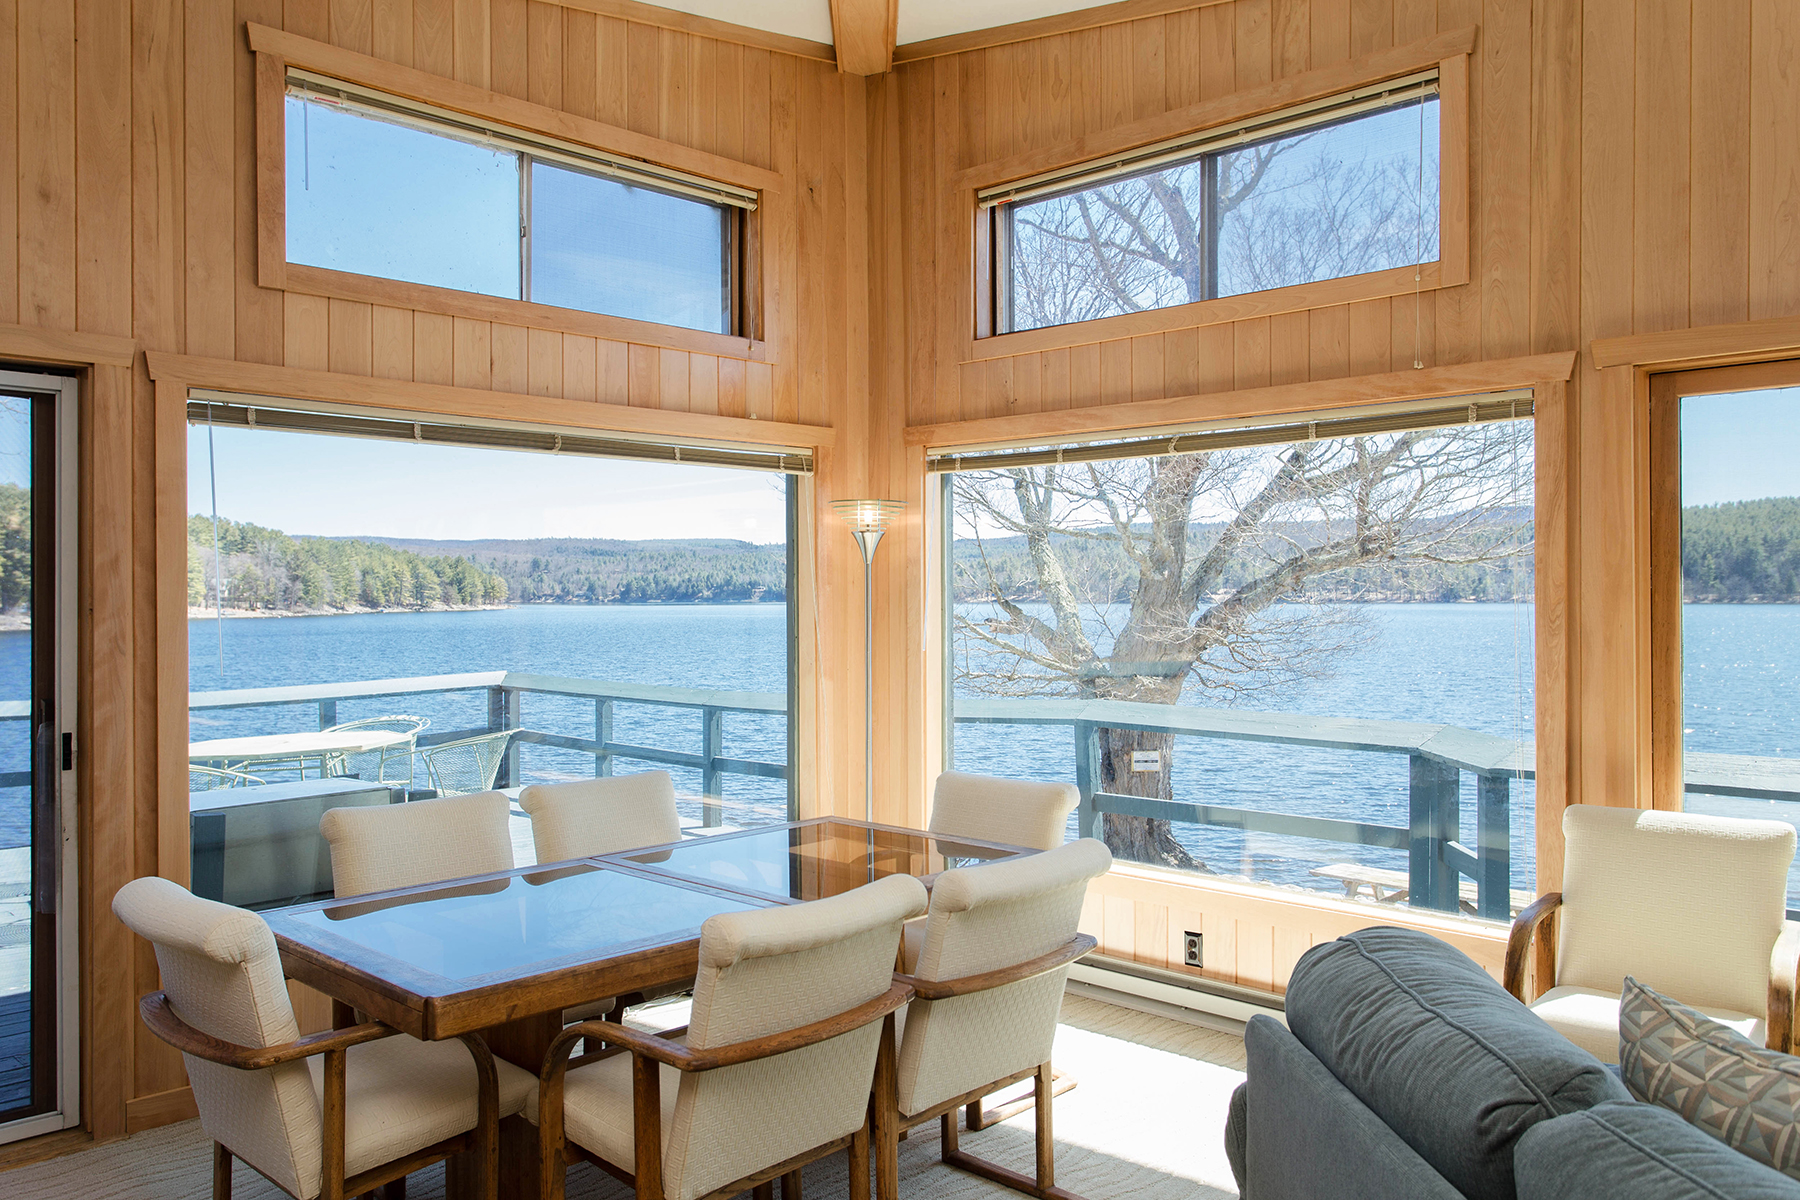 Additional photo for property listing at Panoramic Views of Sacandaga Lake 2044 N Shore Rd Day, New York 12835 États-Unis